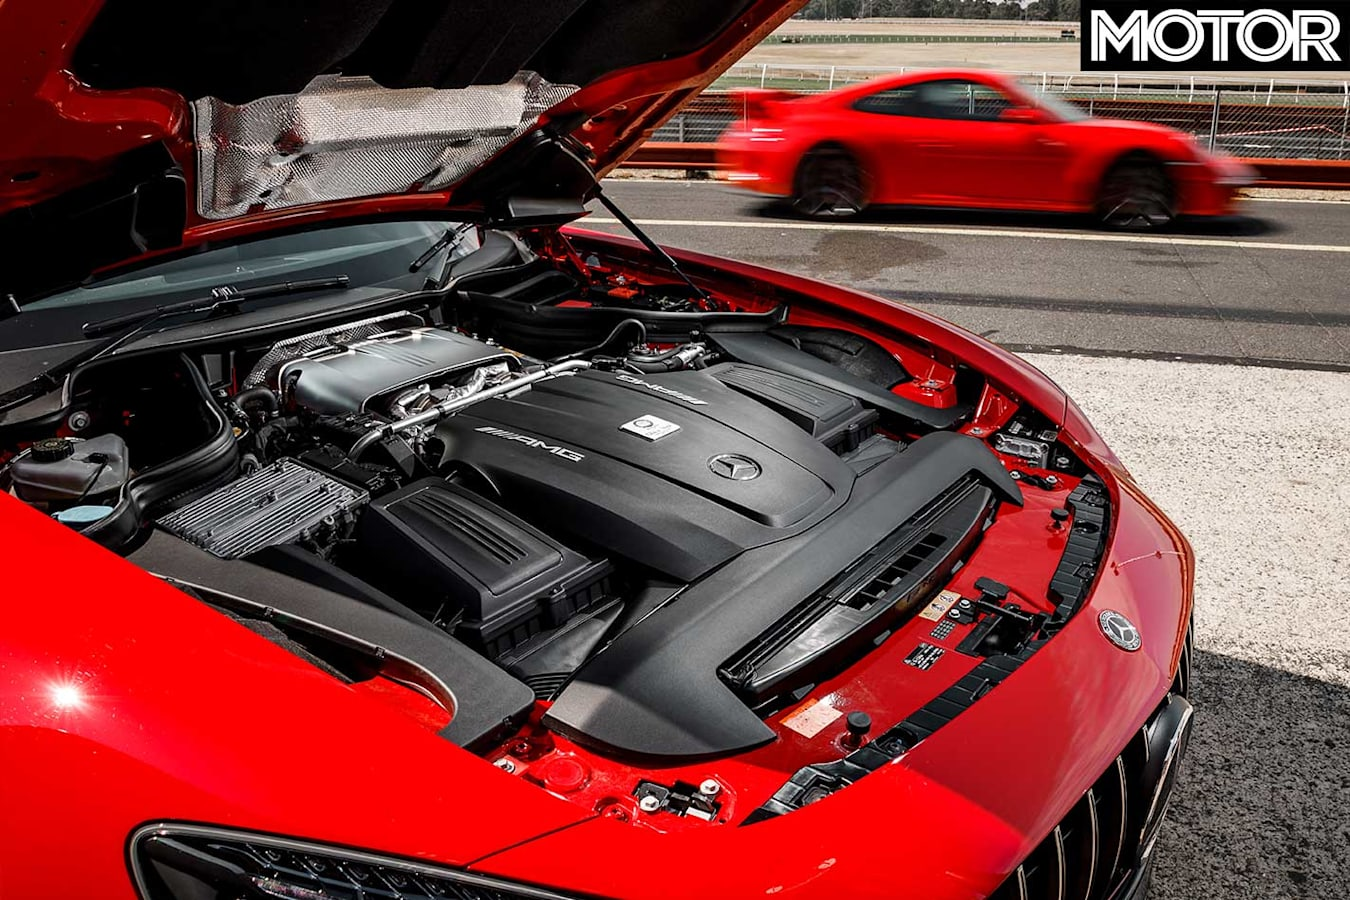 2019 Mercedes AMG GT R 12 Hours Review Engine Track Performance Jpg